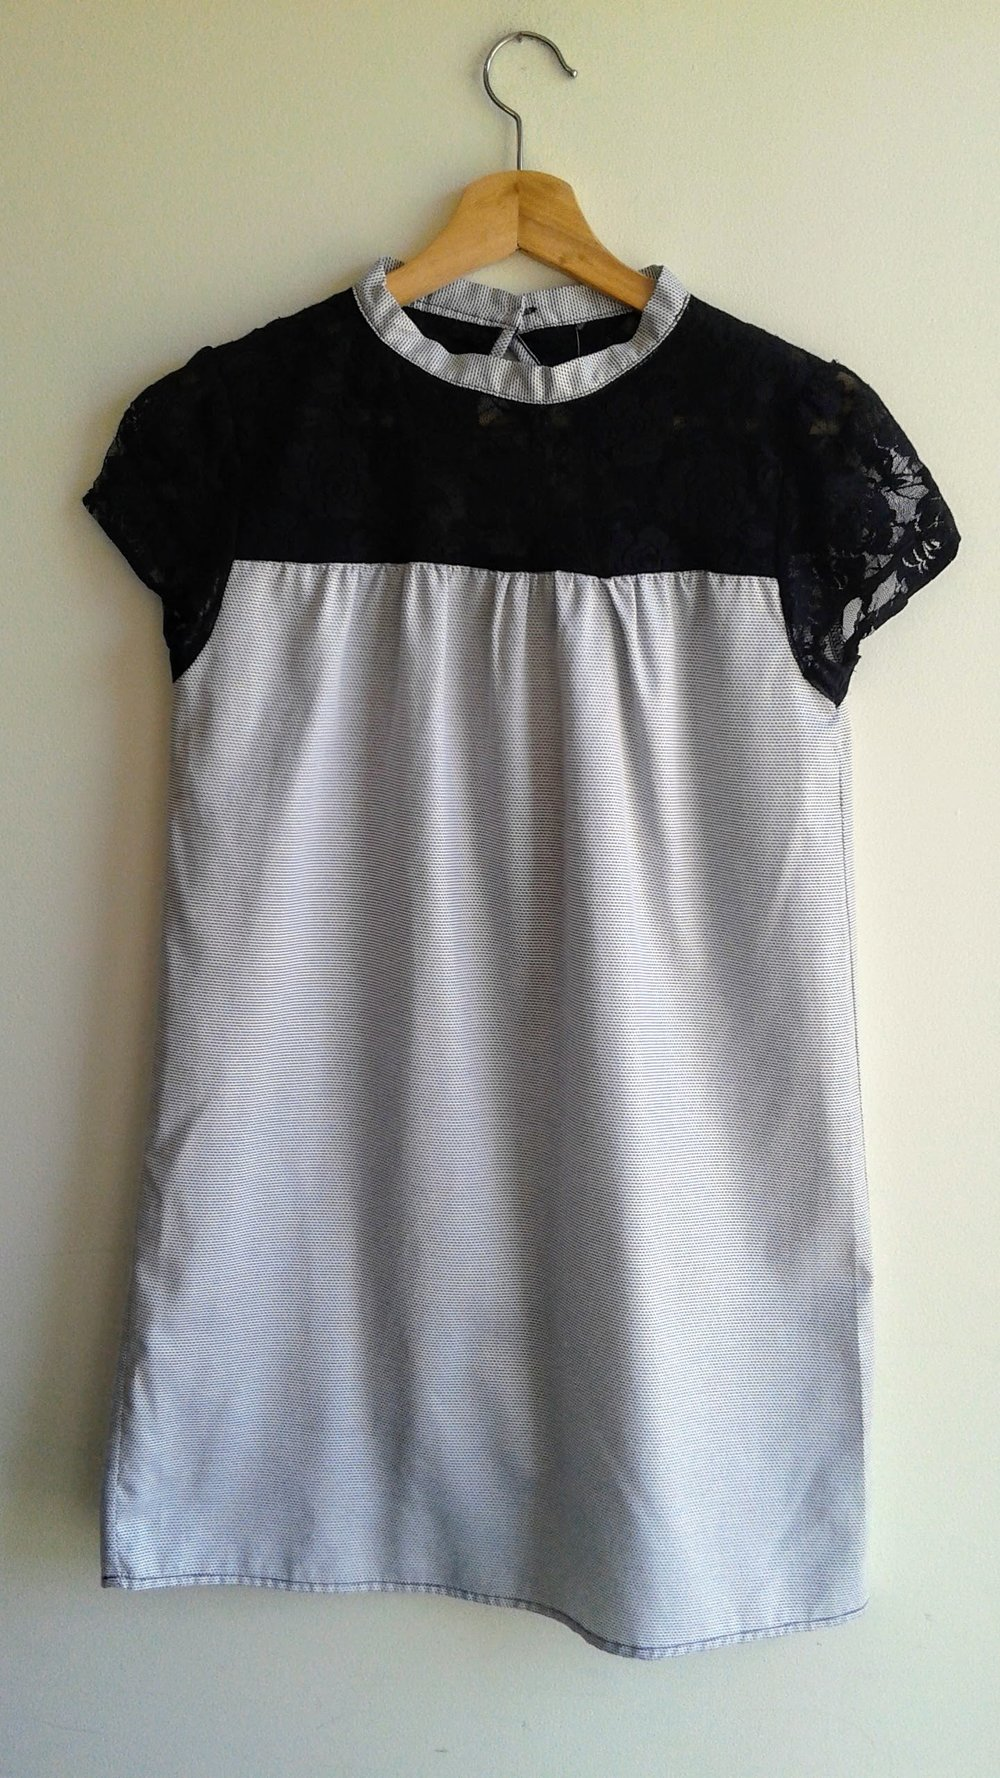 Hand made dress; Size S, $18